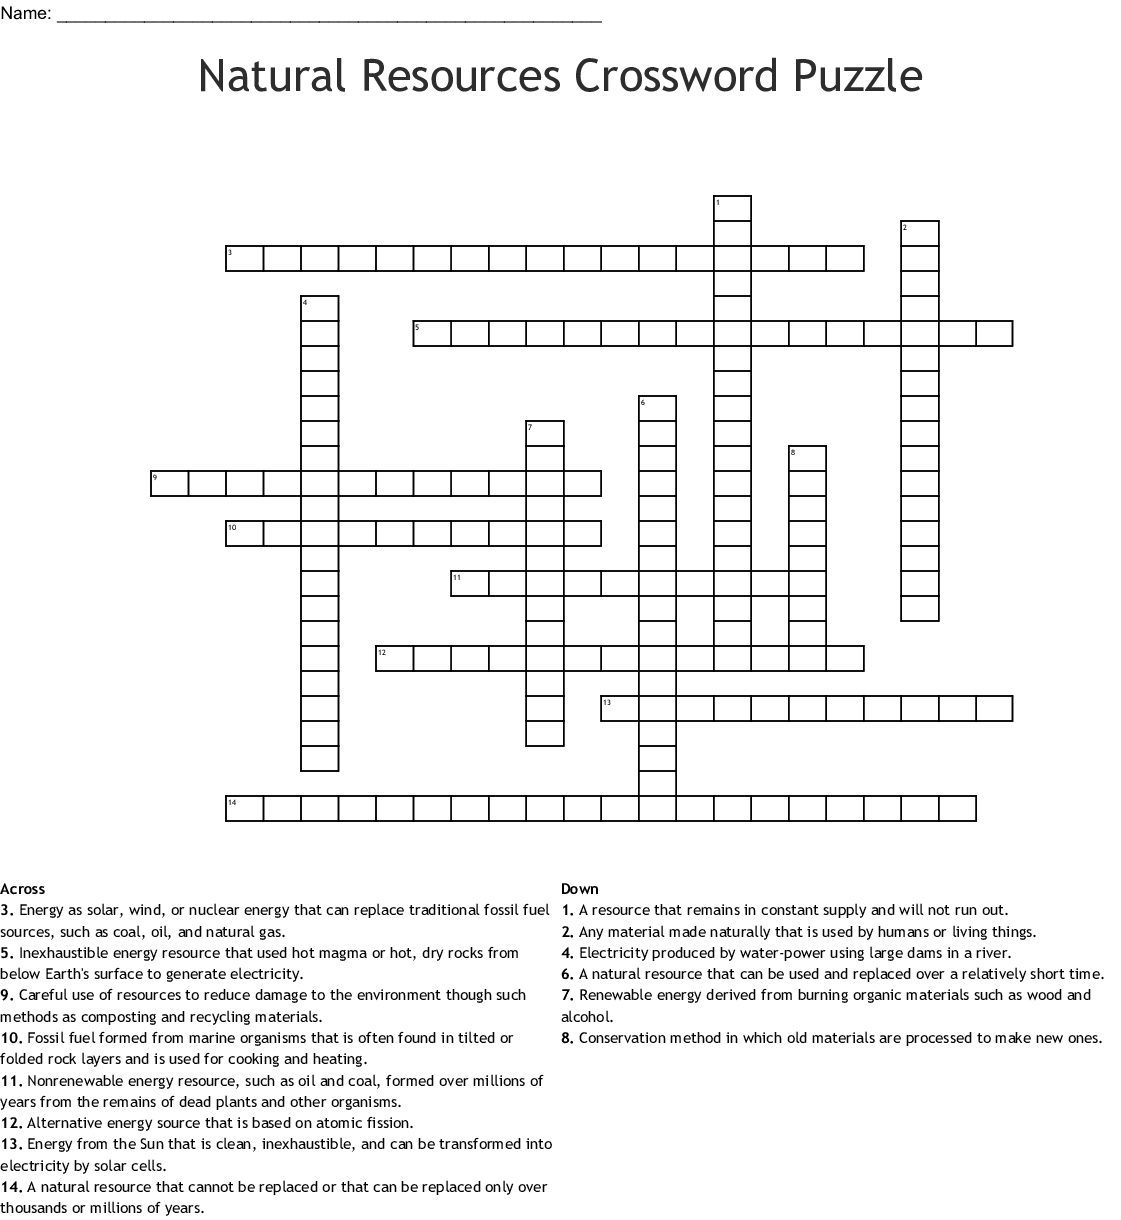 Natural Resources Crossword Puzzle Crossword - Wordmint - Recycling Crossword Puzzle Printable